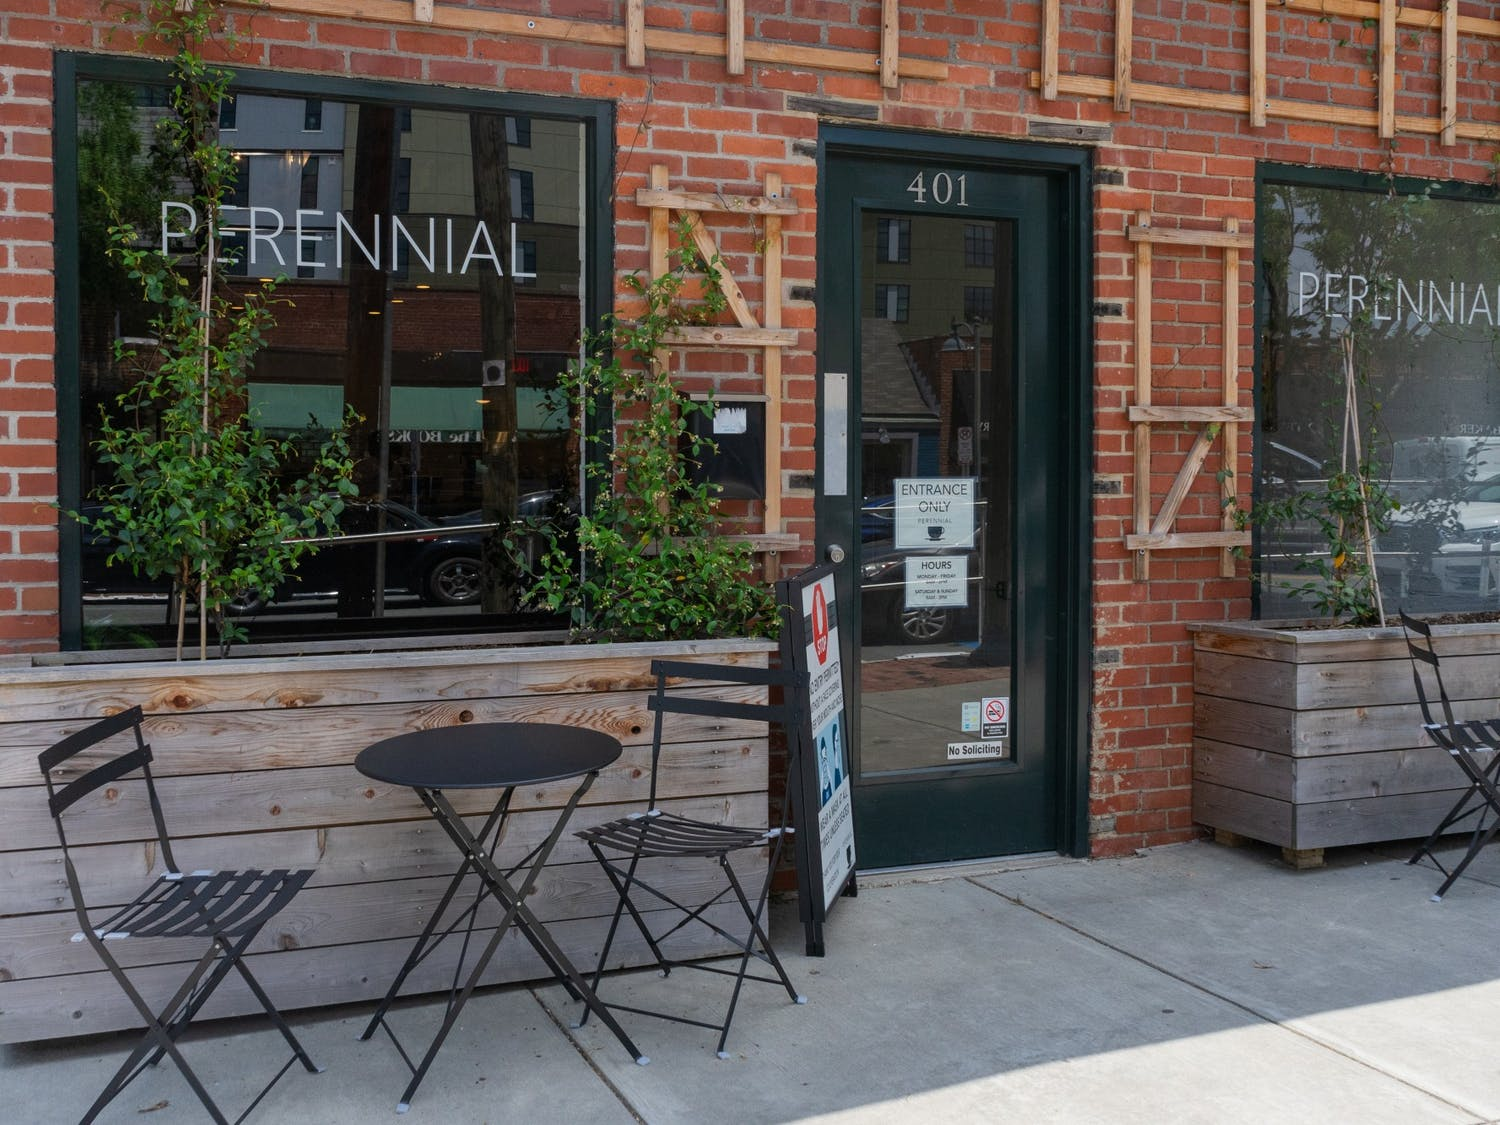 Perennial, a coffee shop on  Franklin Street, pictured on  Friday, May 28th, 2021, the day of their re-opening.